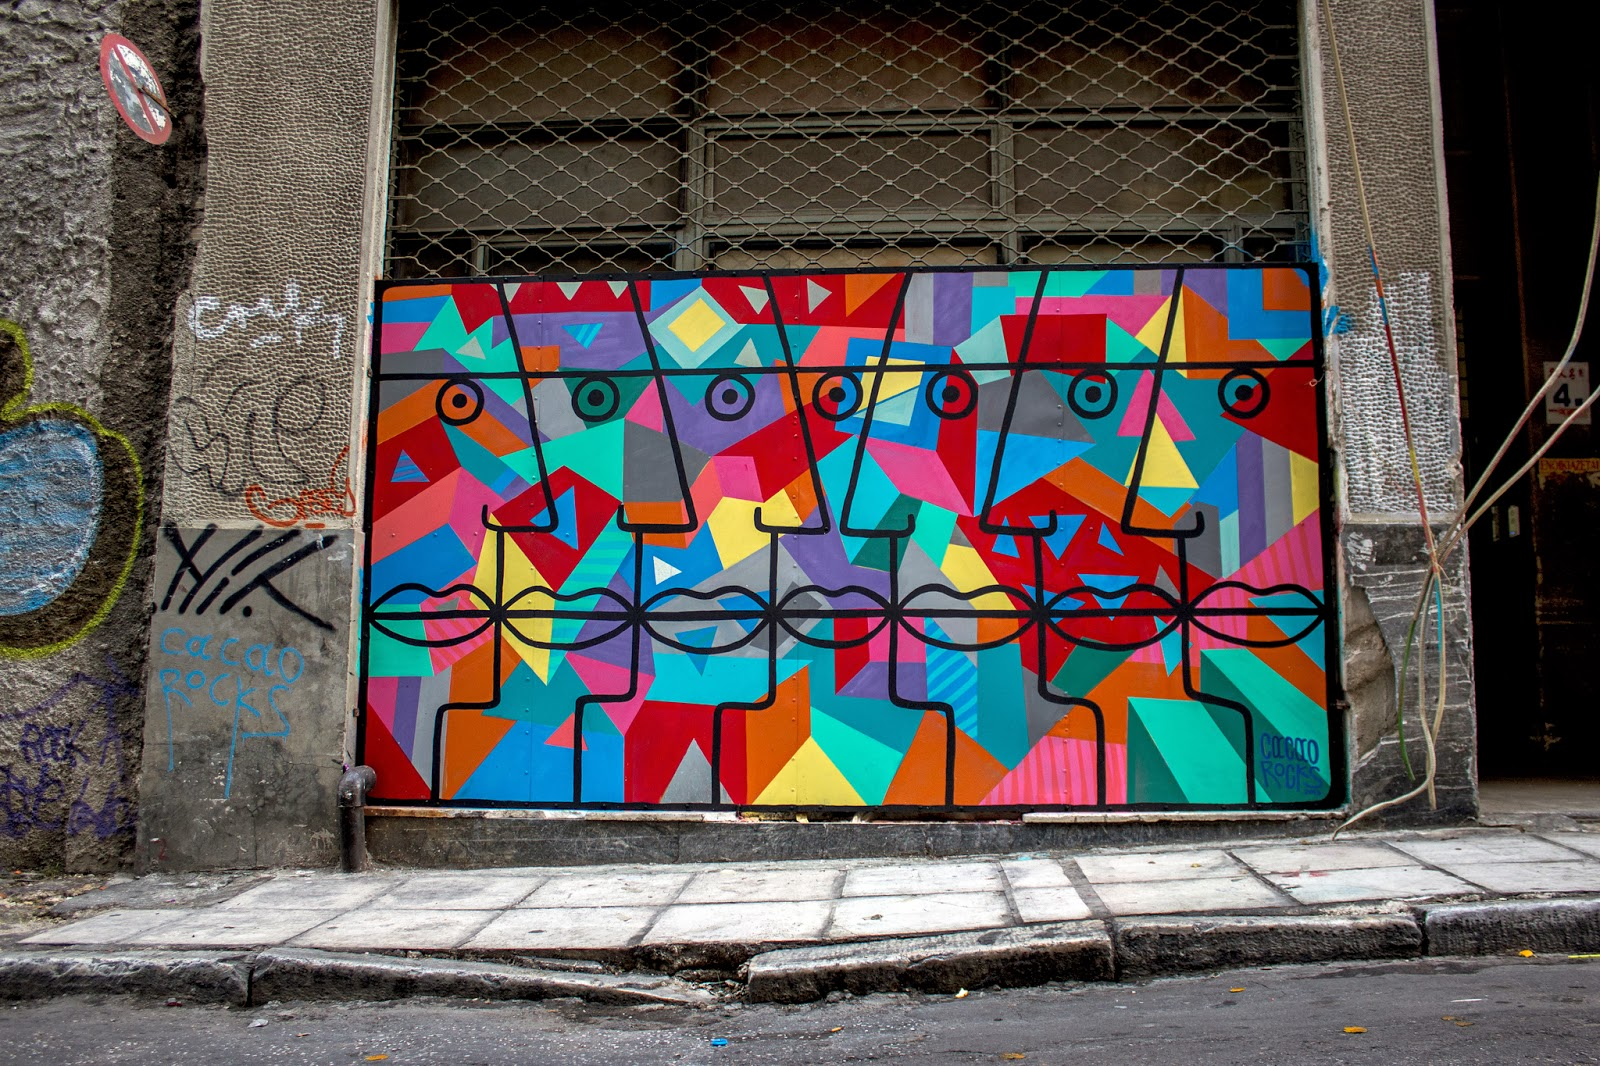 Greek Street Artist paints a new urban art mural on the streets of Athens in Greece. 1